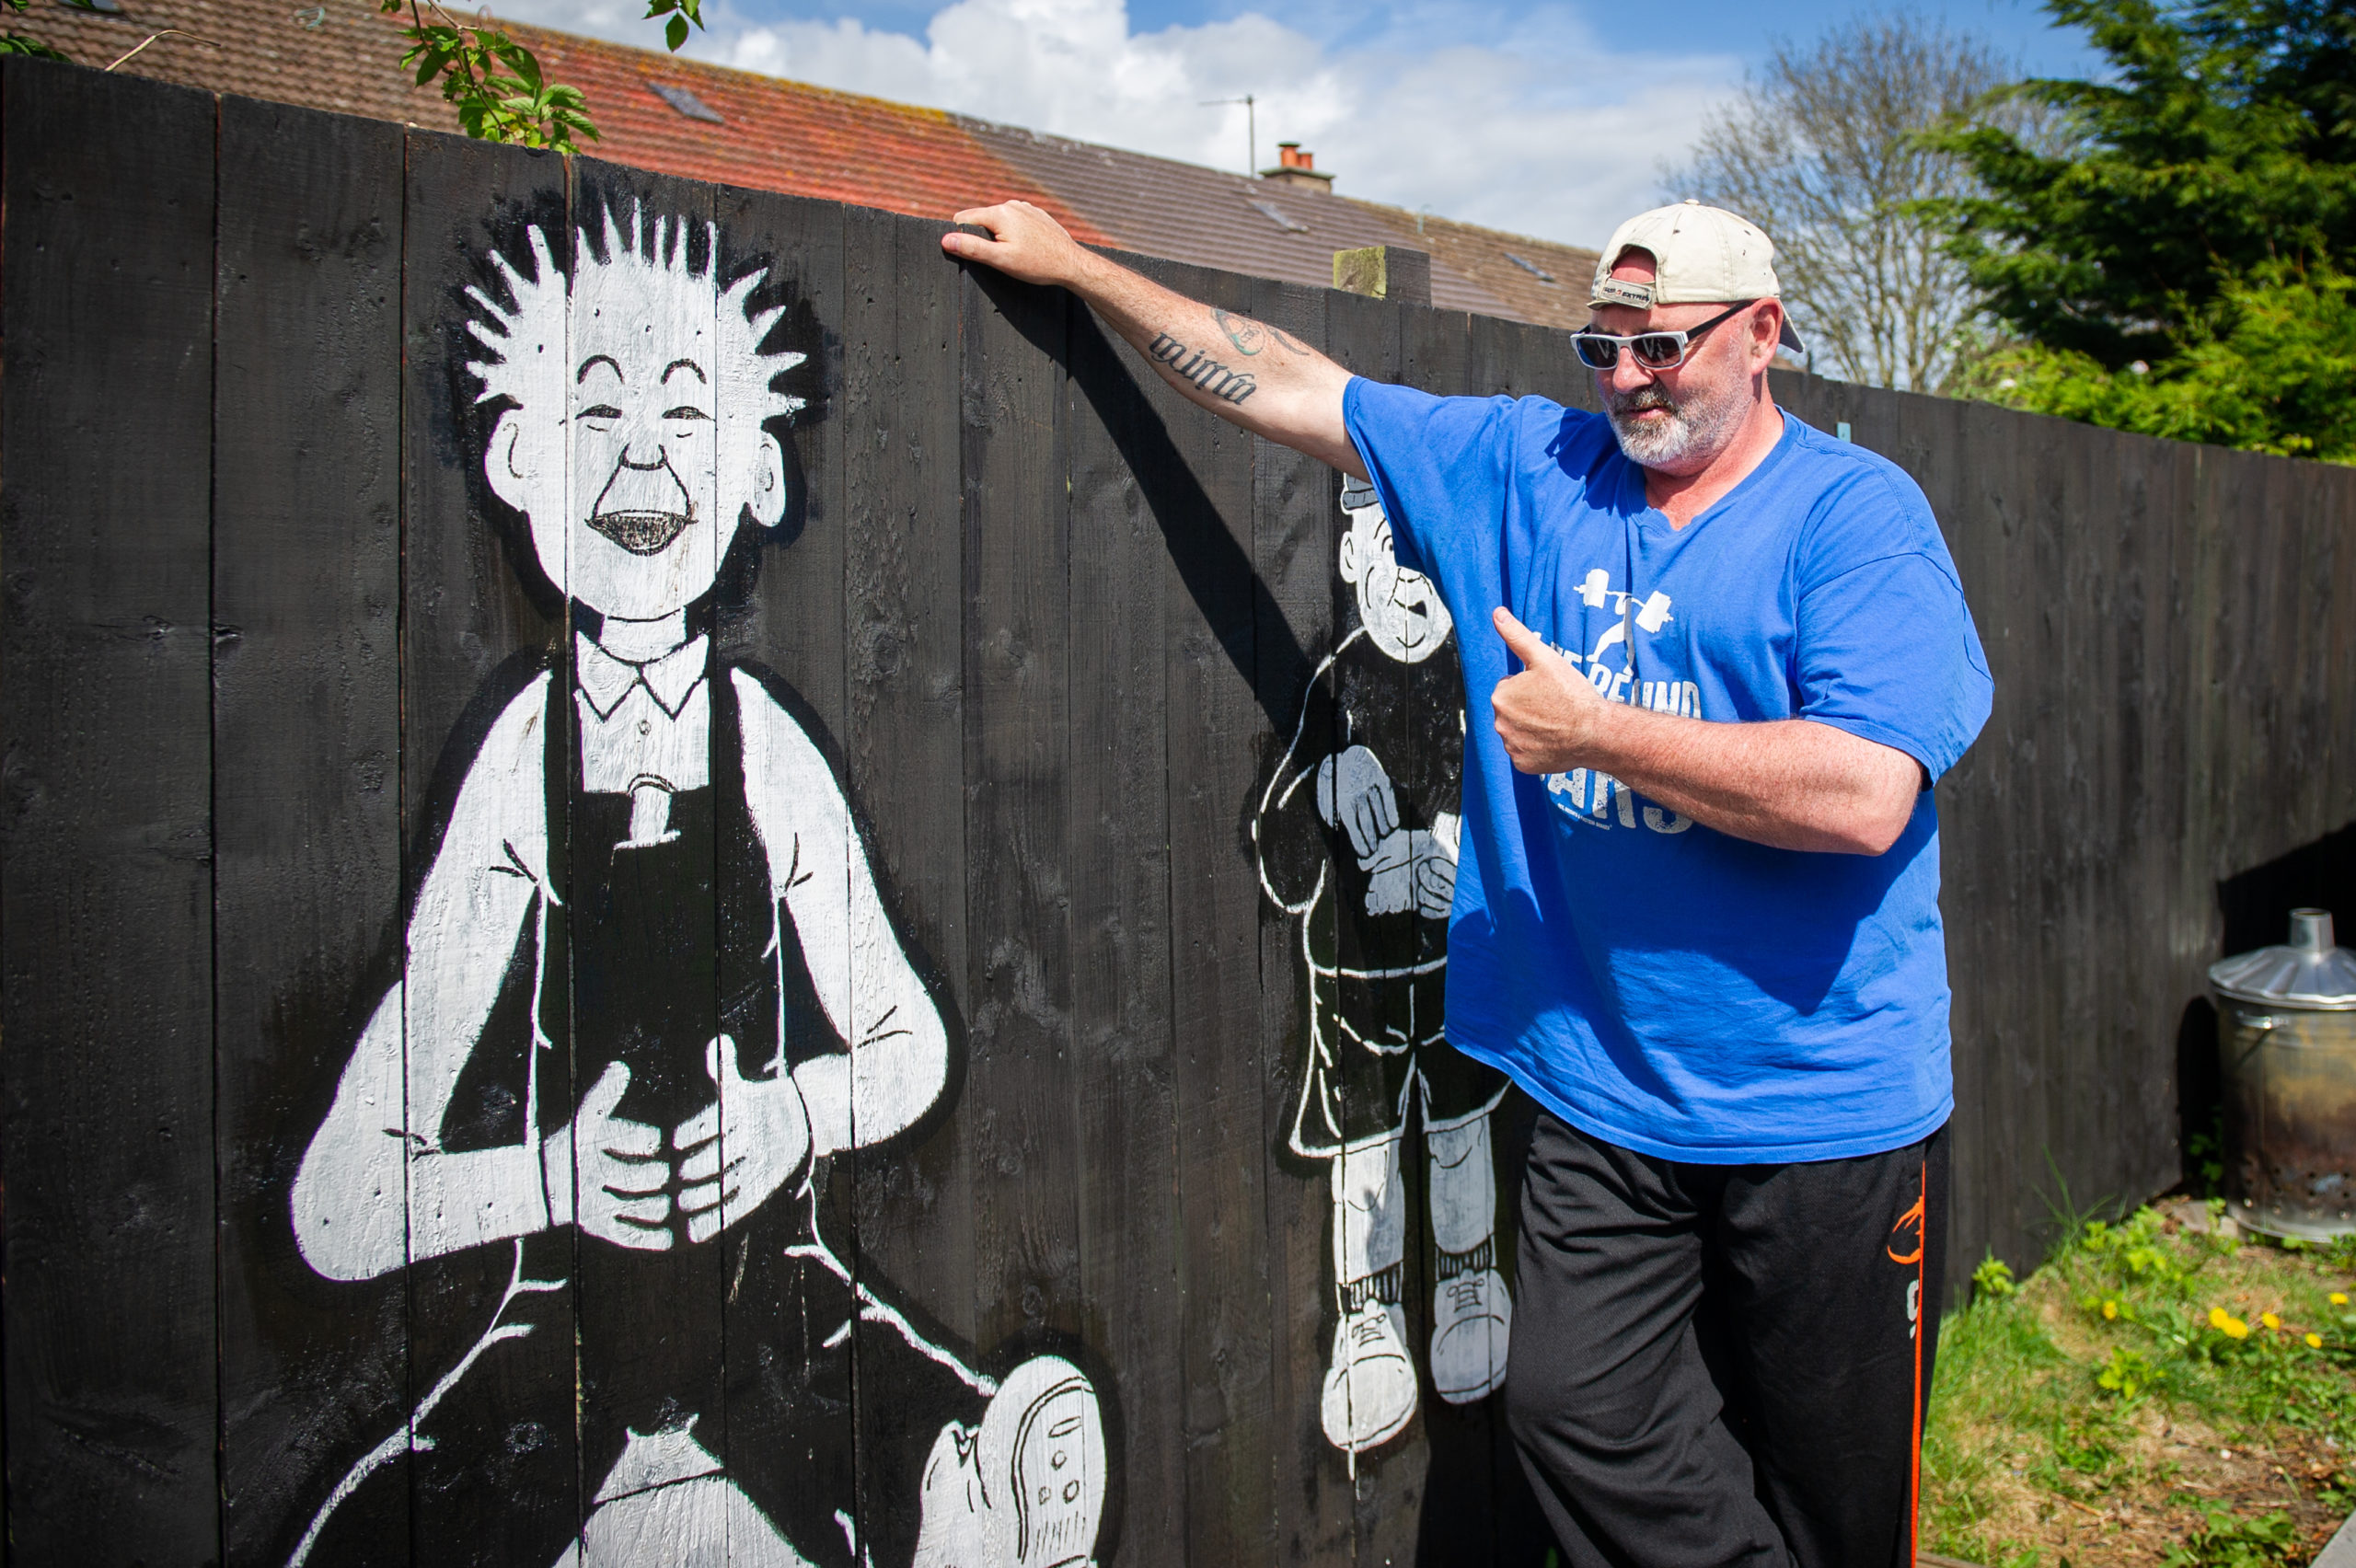 Jackie Handy has painted Oor Wullie characters onto his fence during lockdown